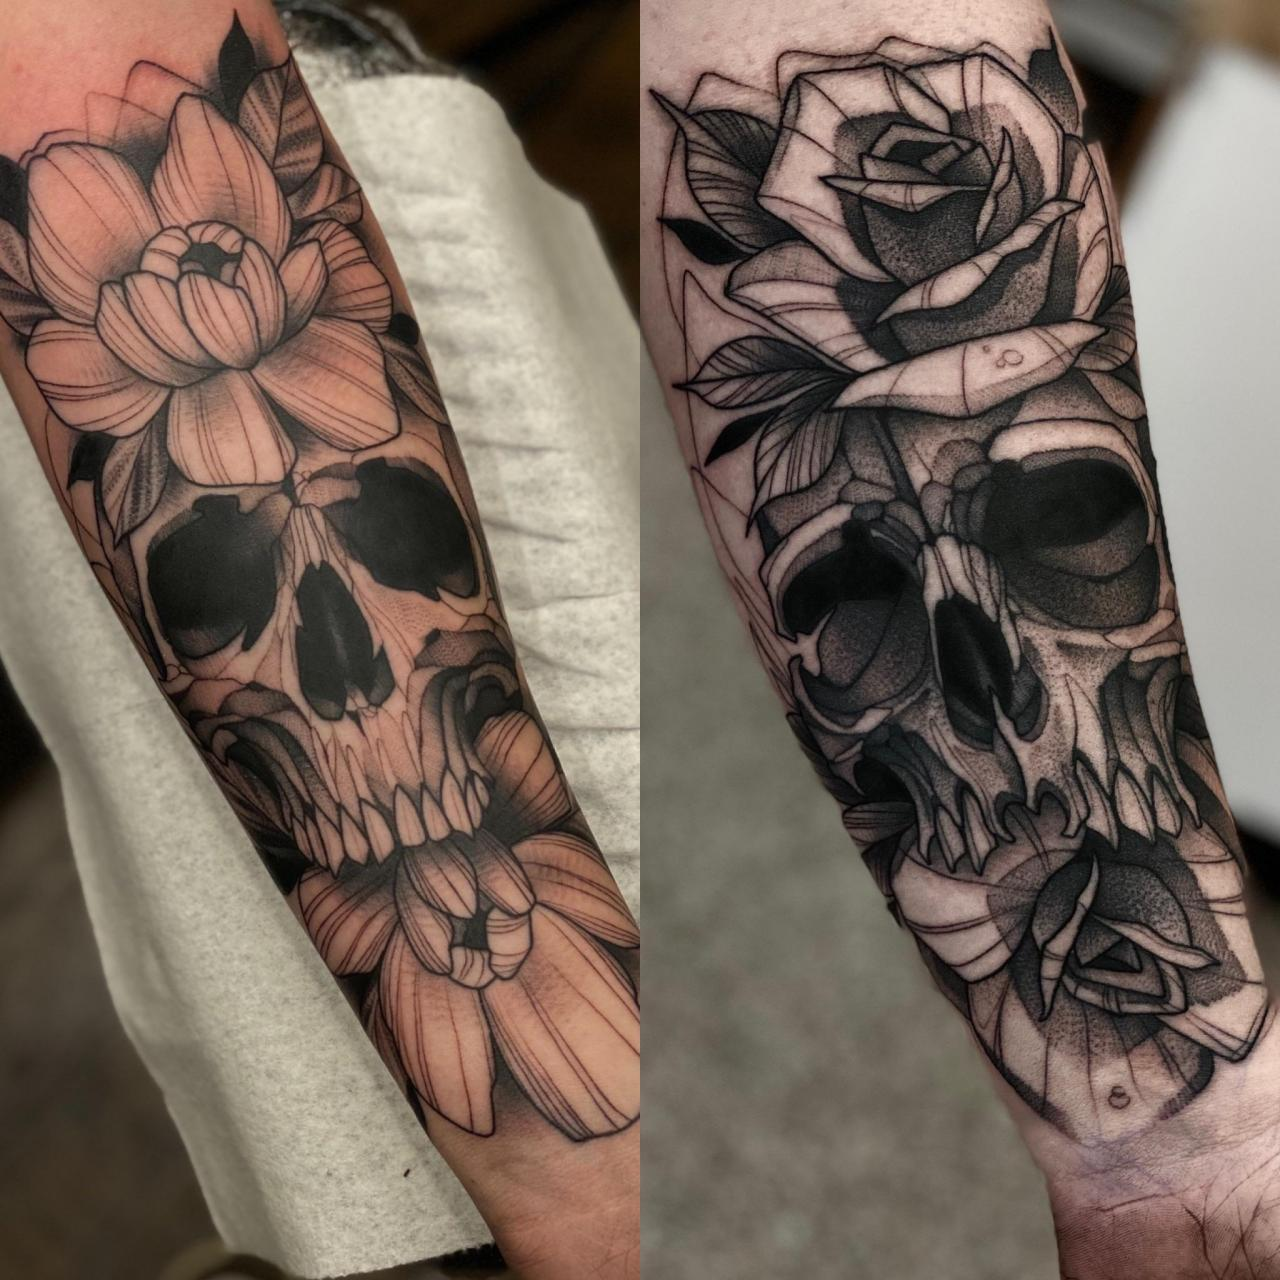 Pre quarantine vs post quarantine progress on skulls and flowers!